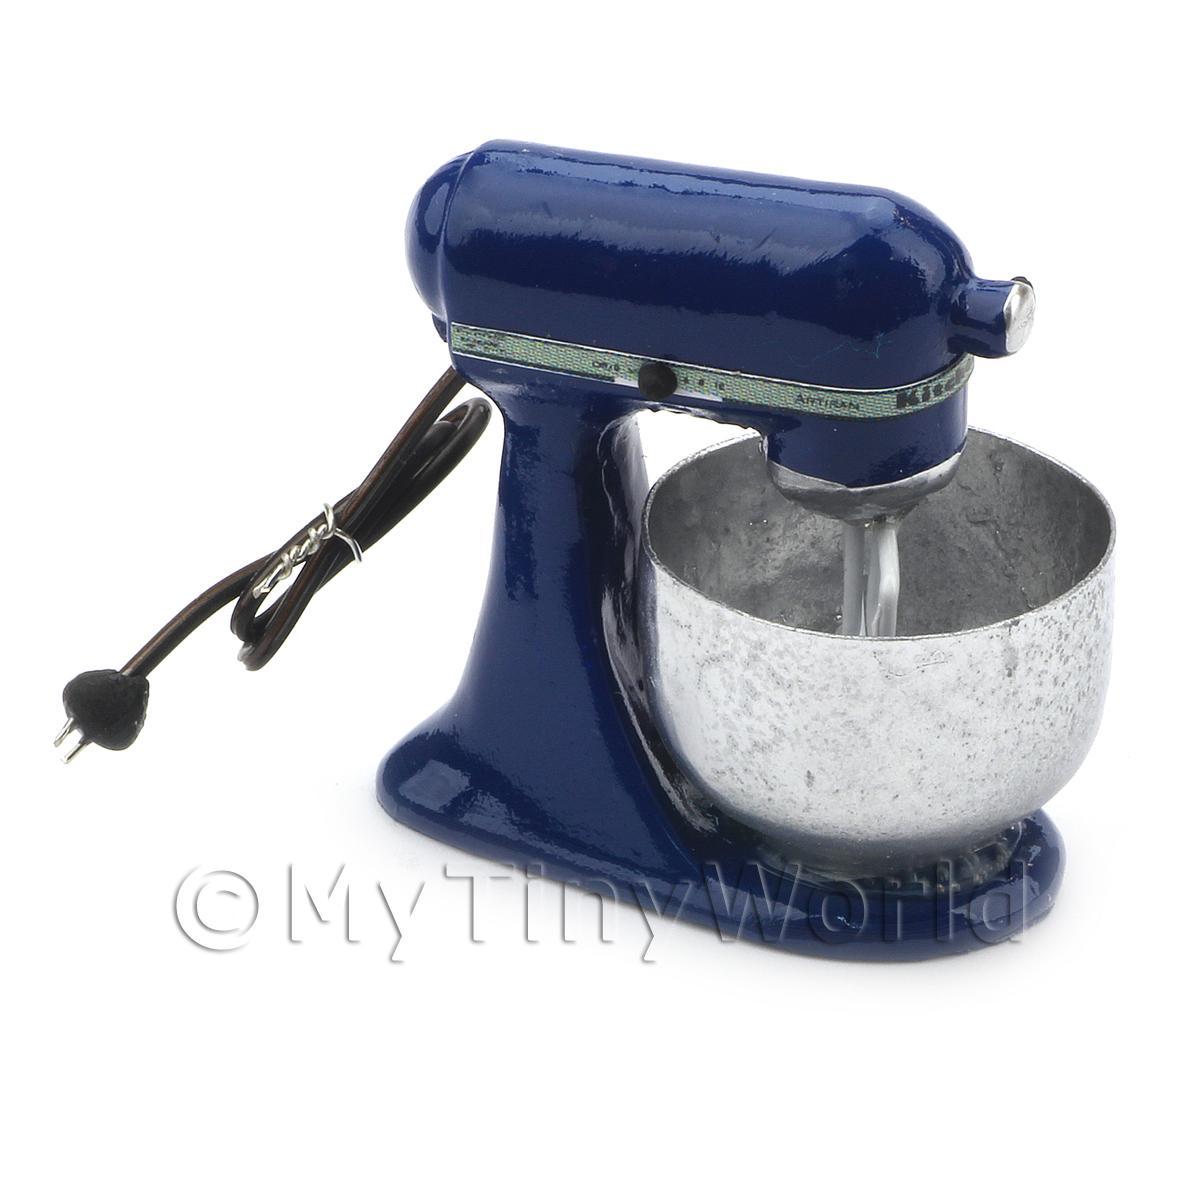 Navy Blue Dolls House Miniature Old Style Batter / Dough Mixer